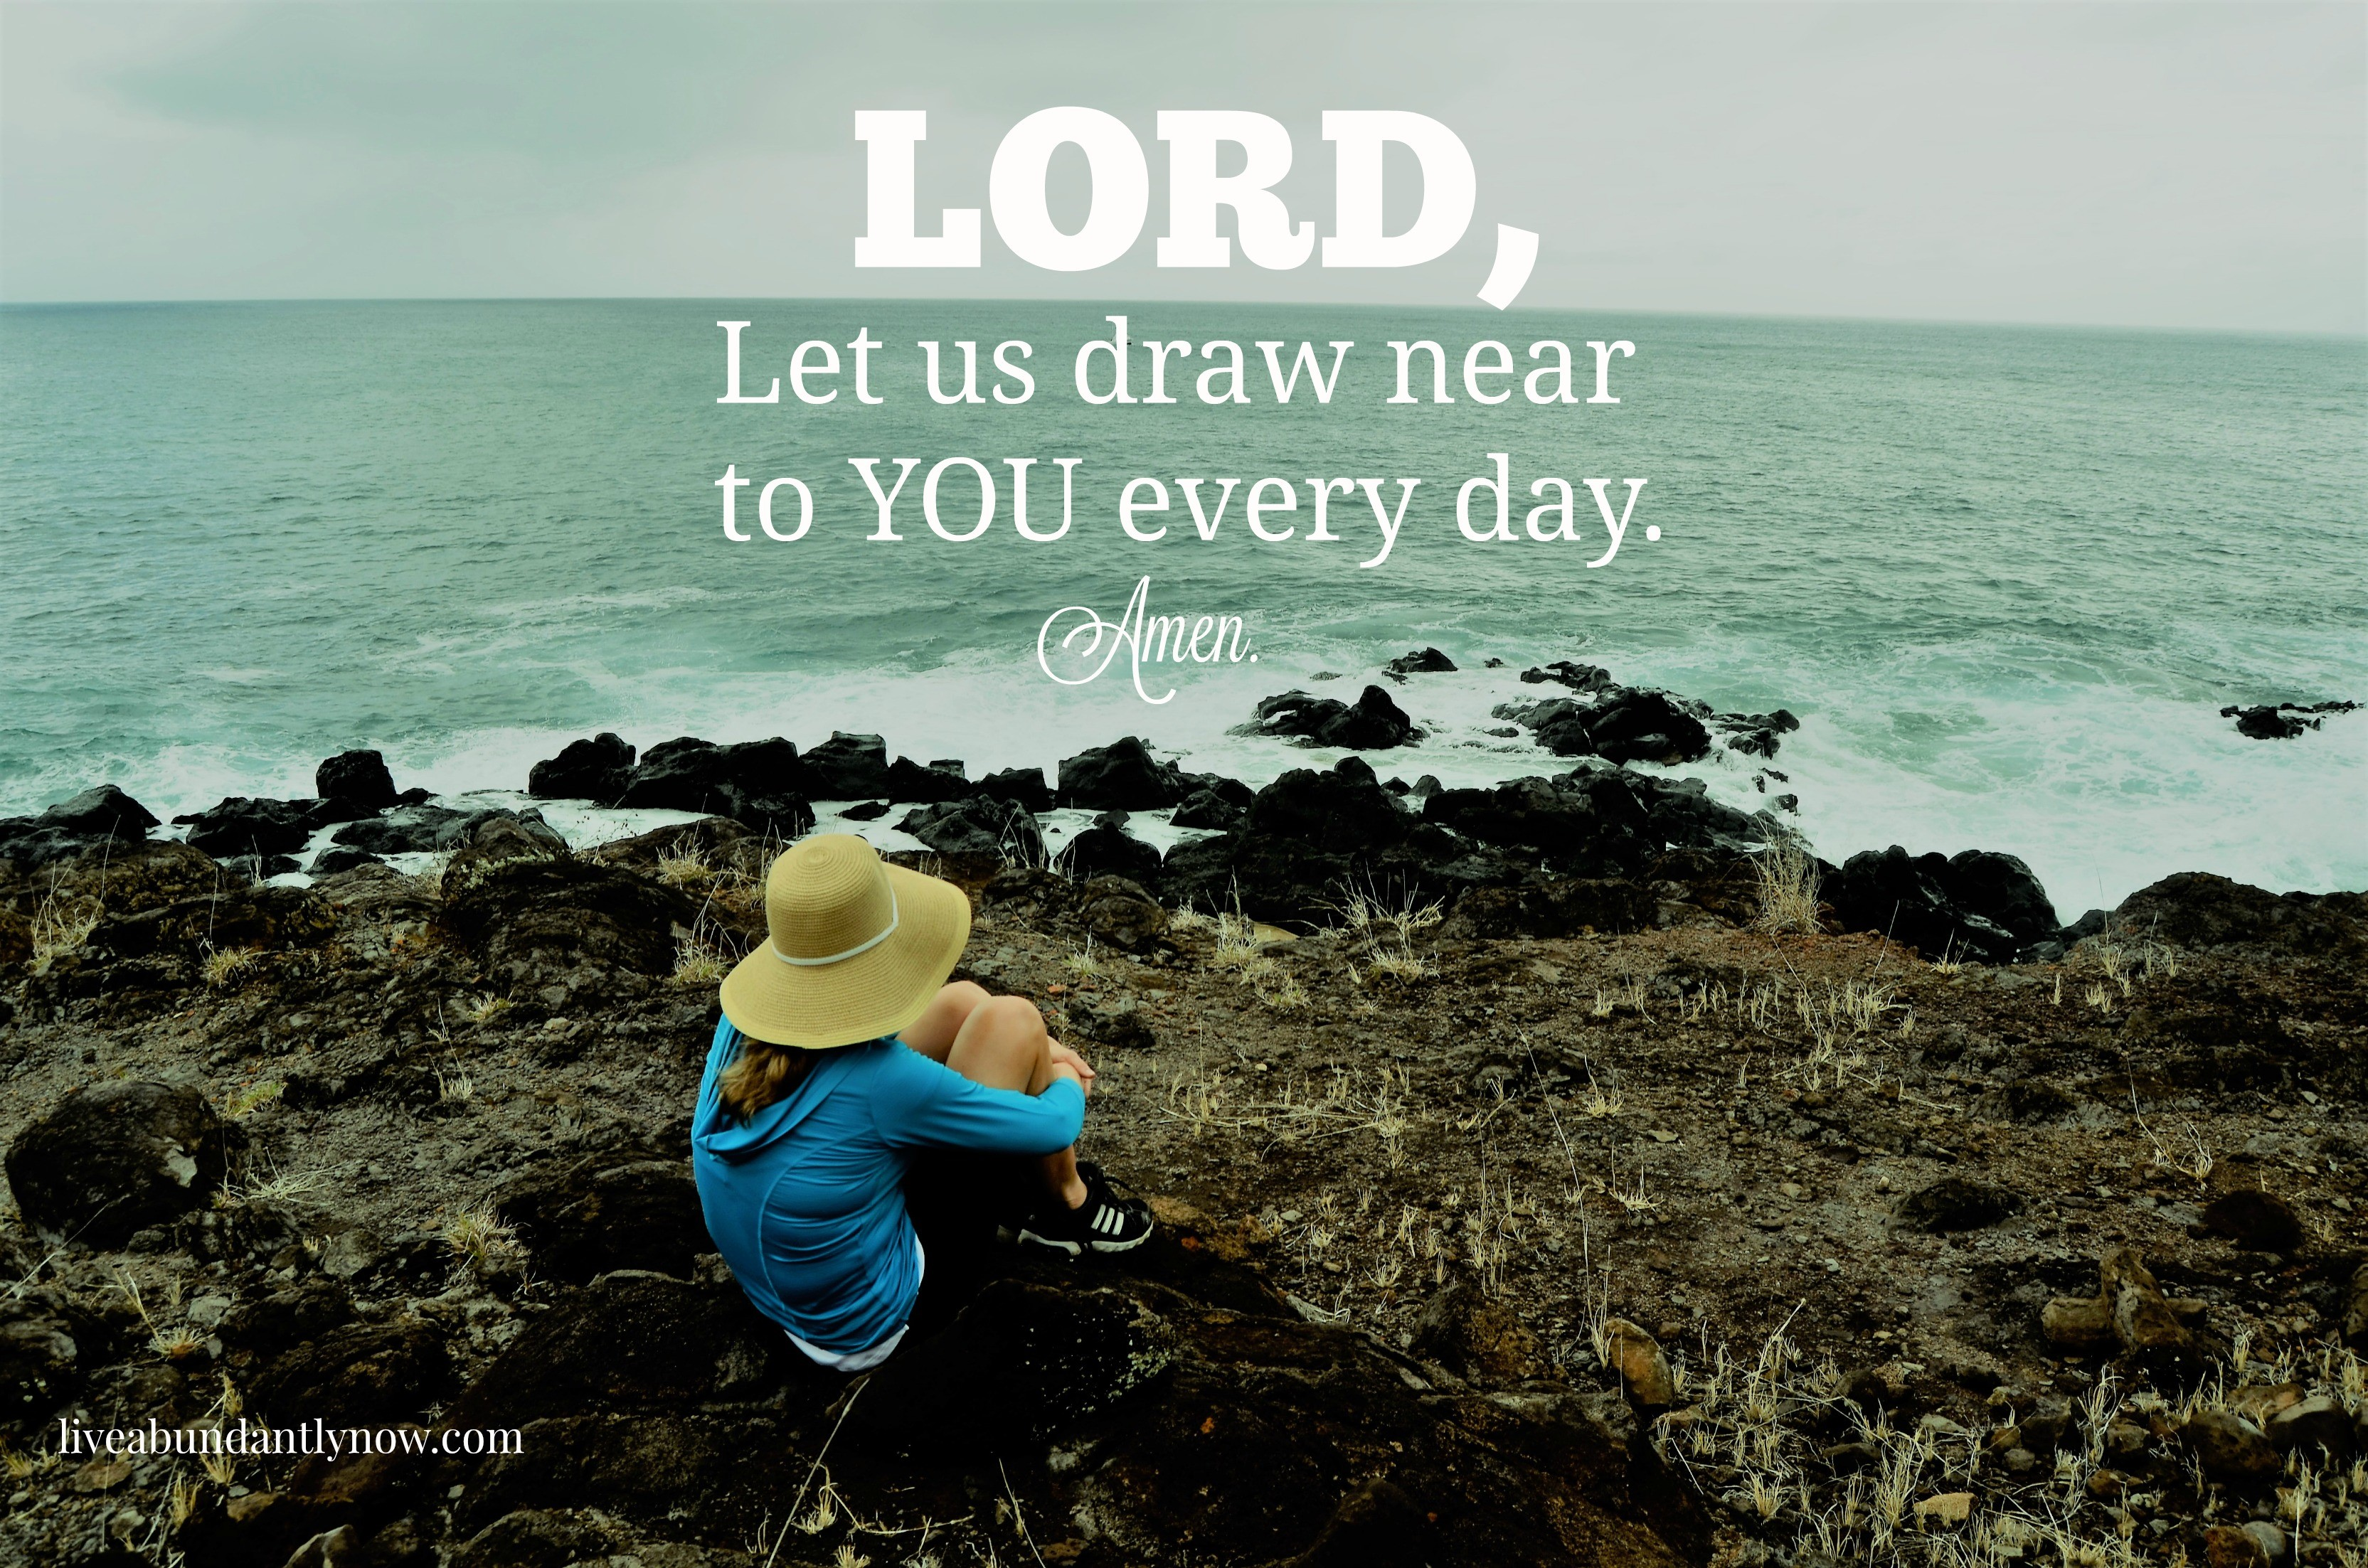 LORD, LET US DRAW NEAR TO YOU